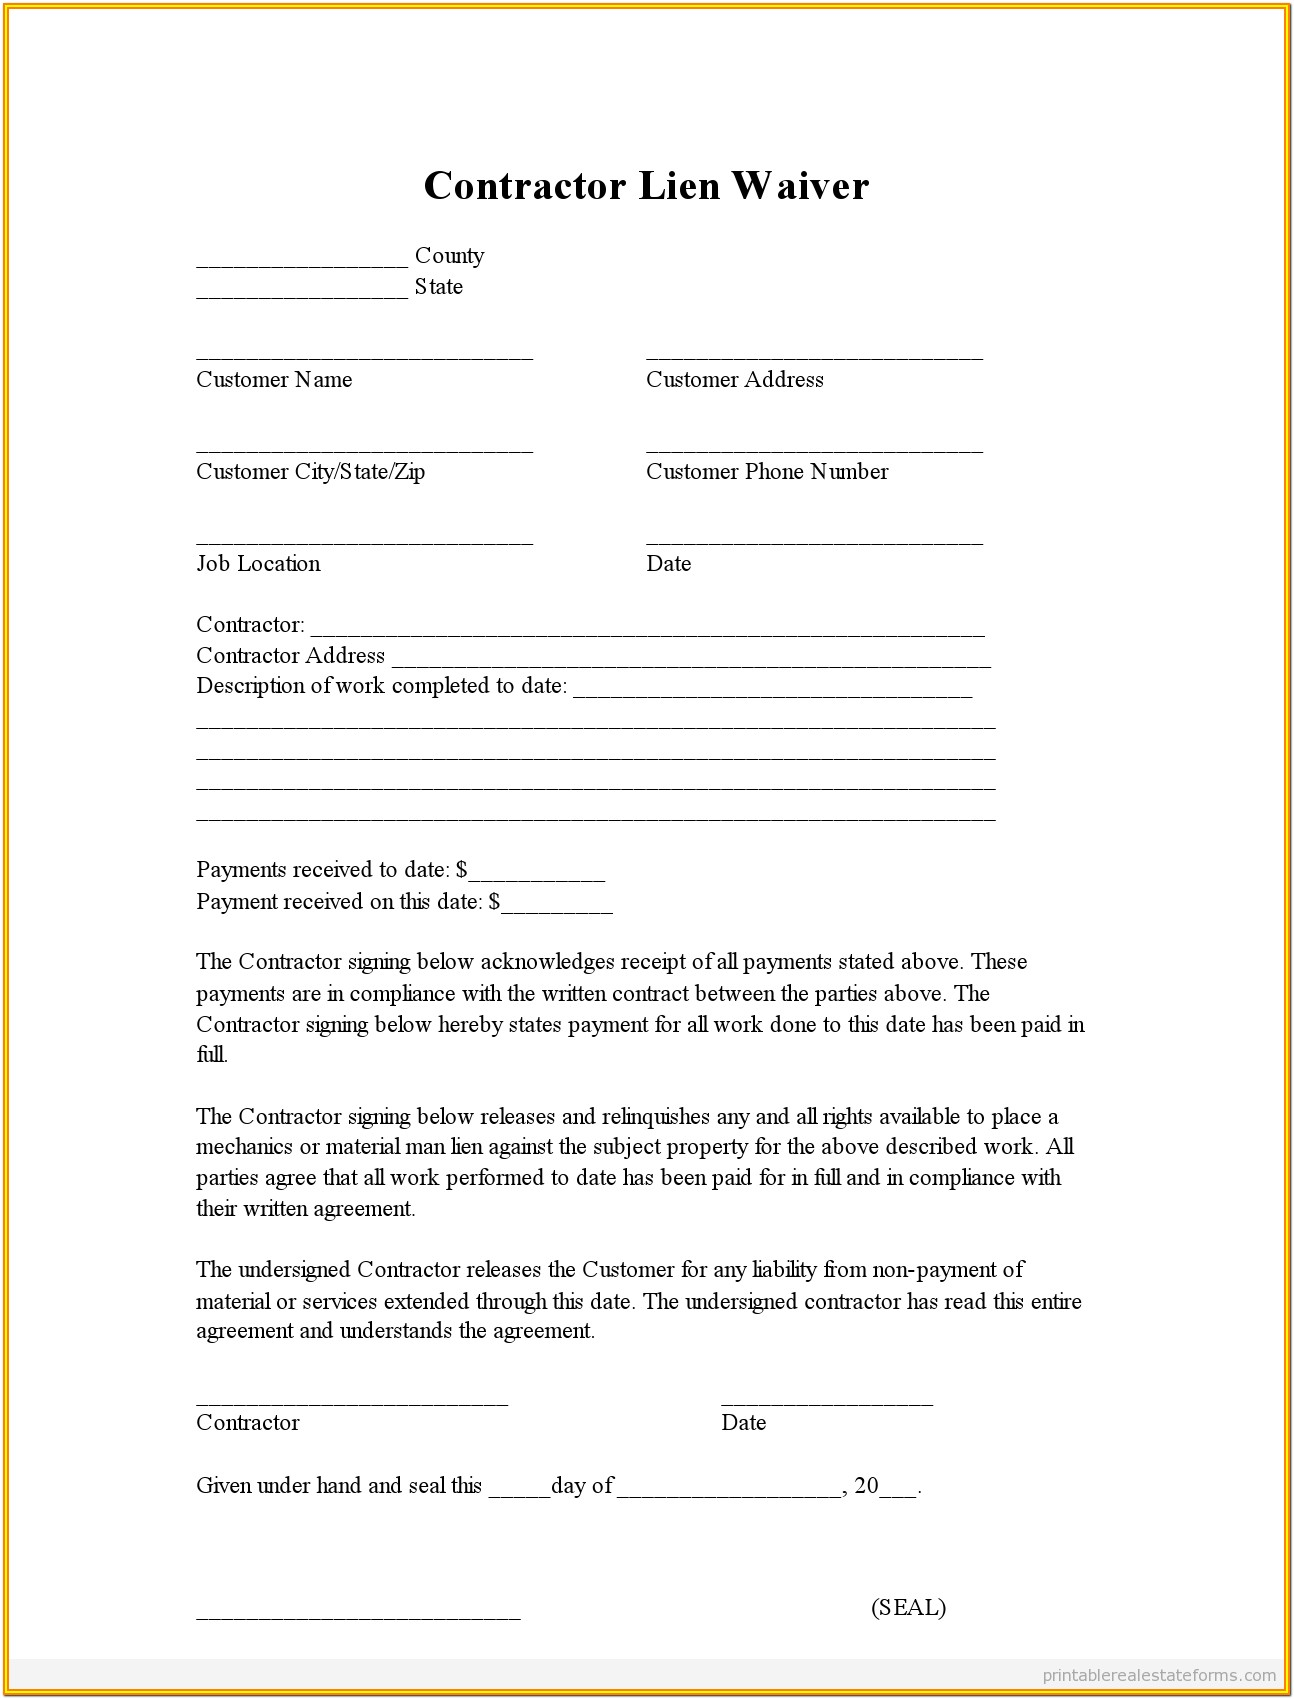 Construction Lien Waiver Form